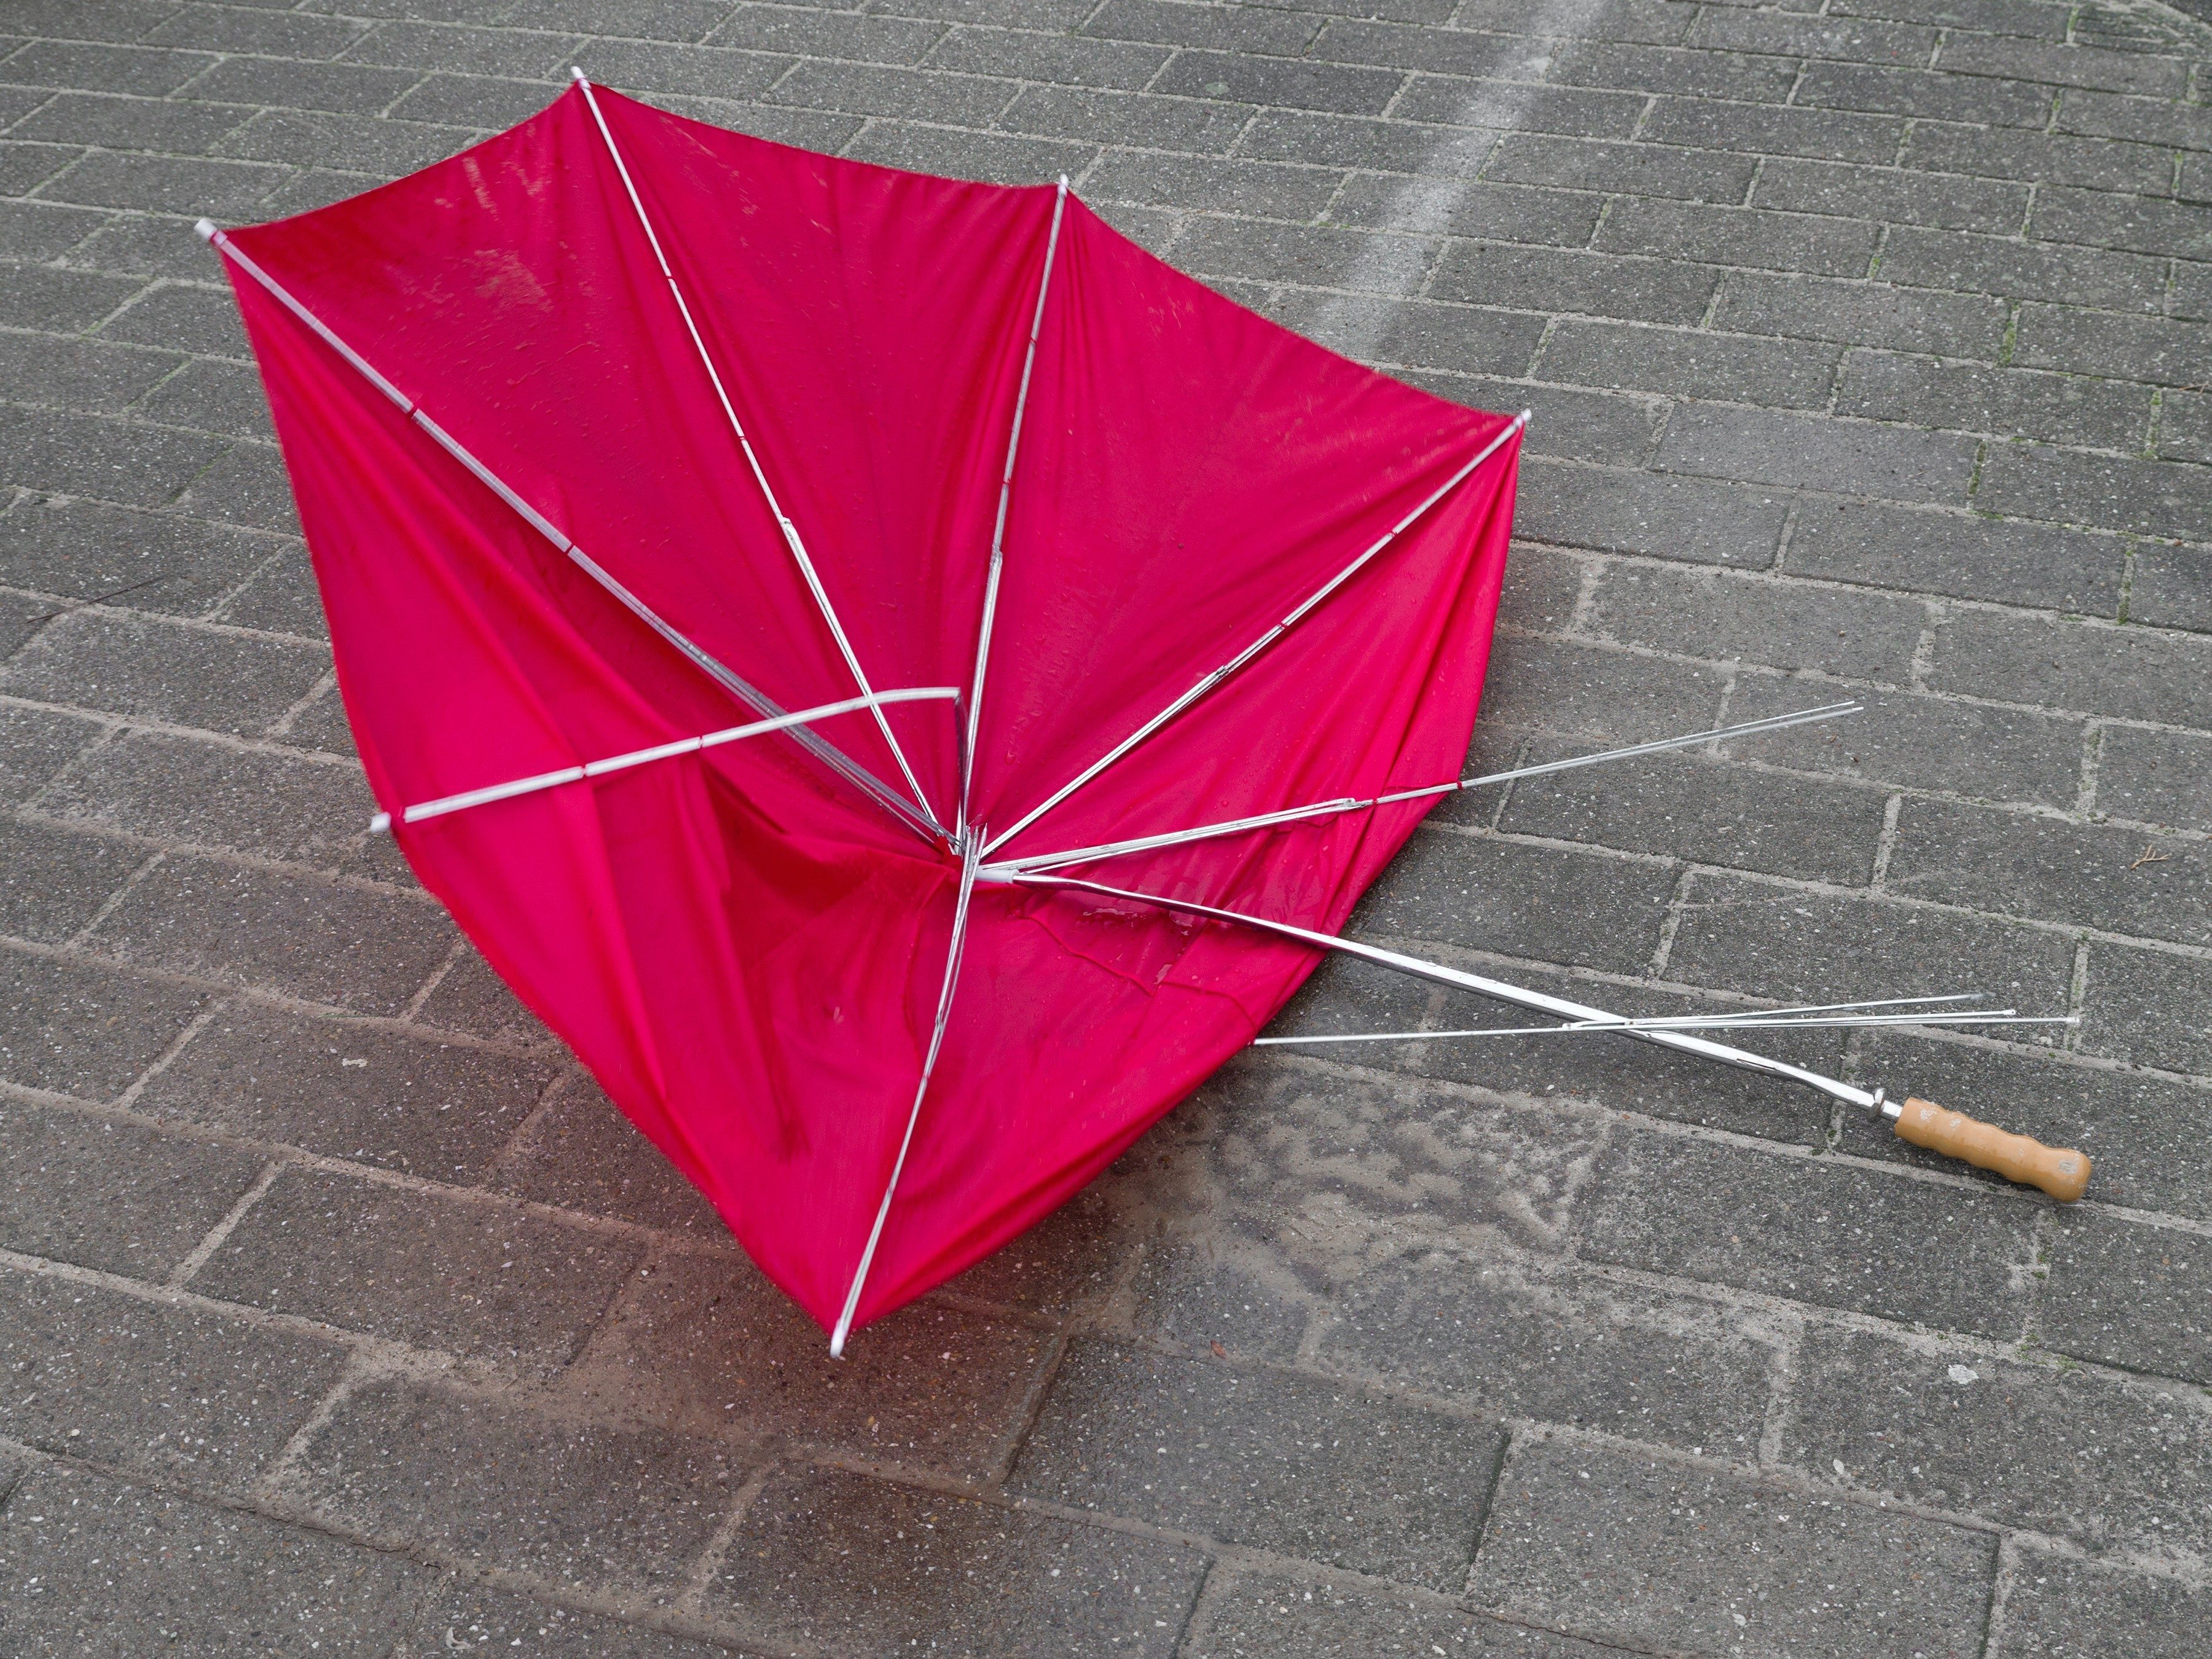 5. Use Masking Tape to Fix a Broken Umbrella